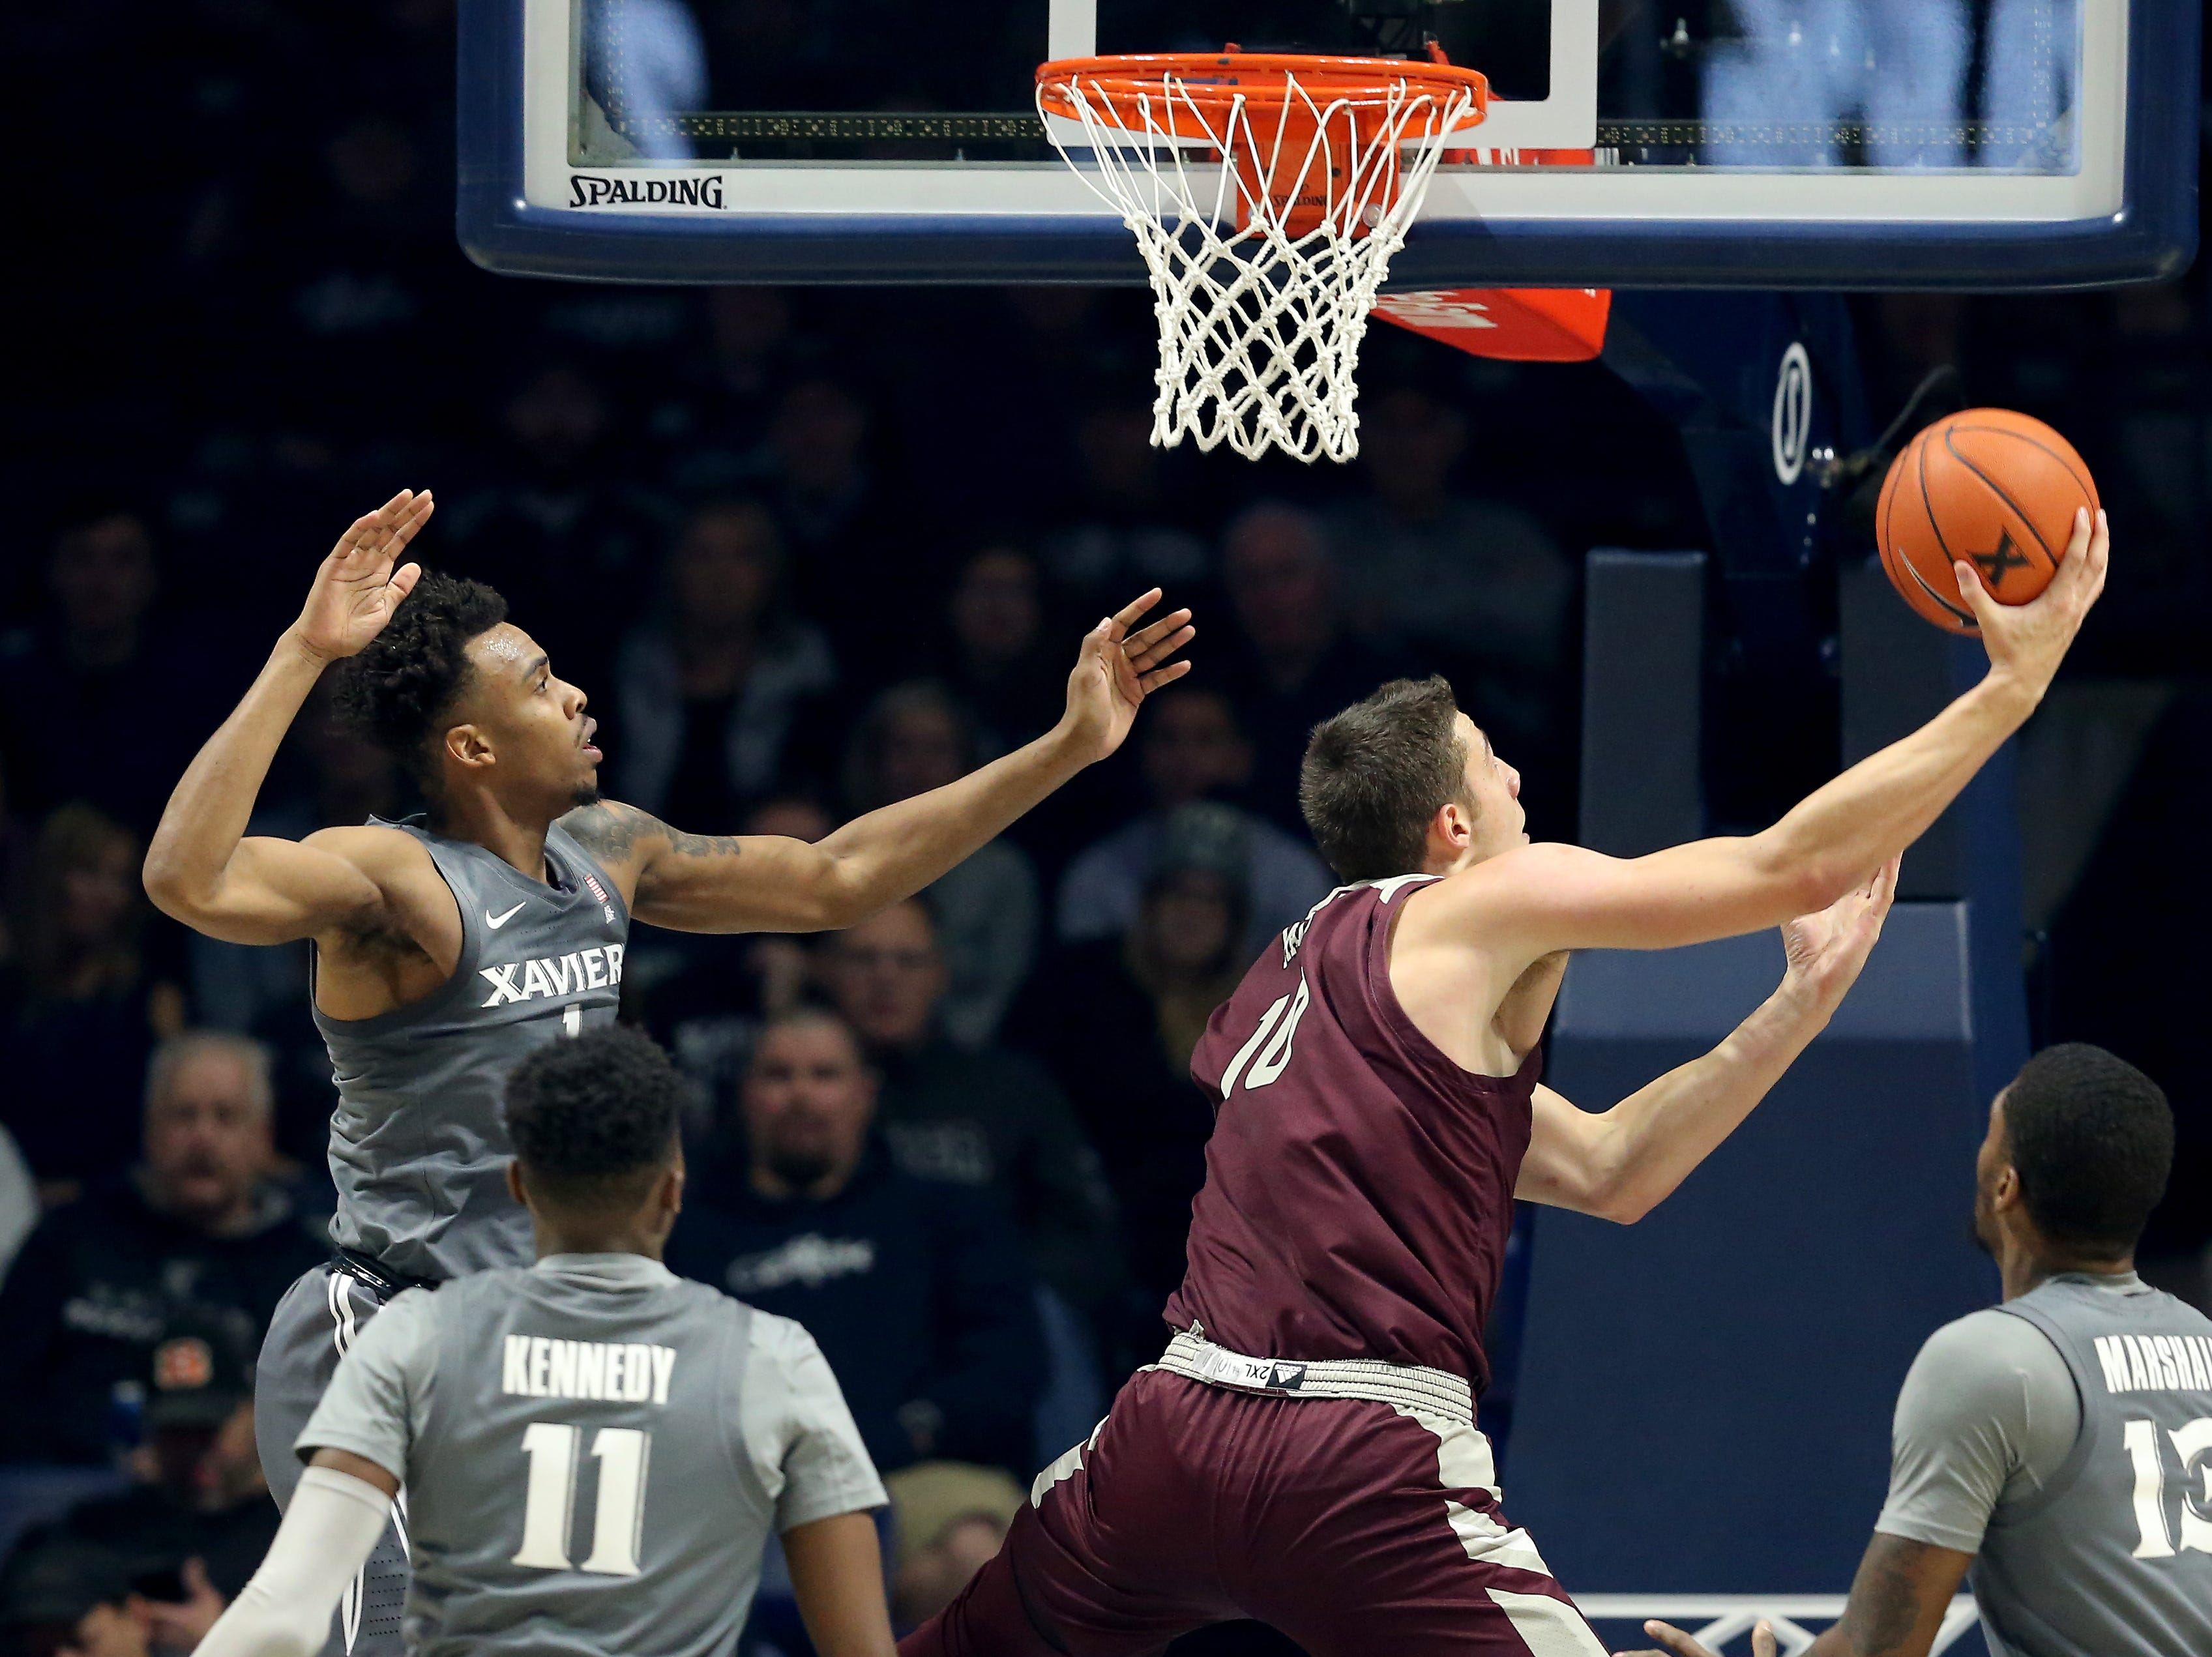 Eastern Kentucky Colonels forward Nick Mayo (10) goes up and under to the basket as Xavier Musketeers guard Paul Scruggs (1) defends in the first half of an NCAA college basketball game, Saturday, Dec. 15, 2018, at Cintas Center in Cincinnati, Ohio